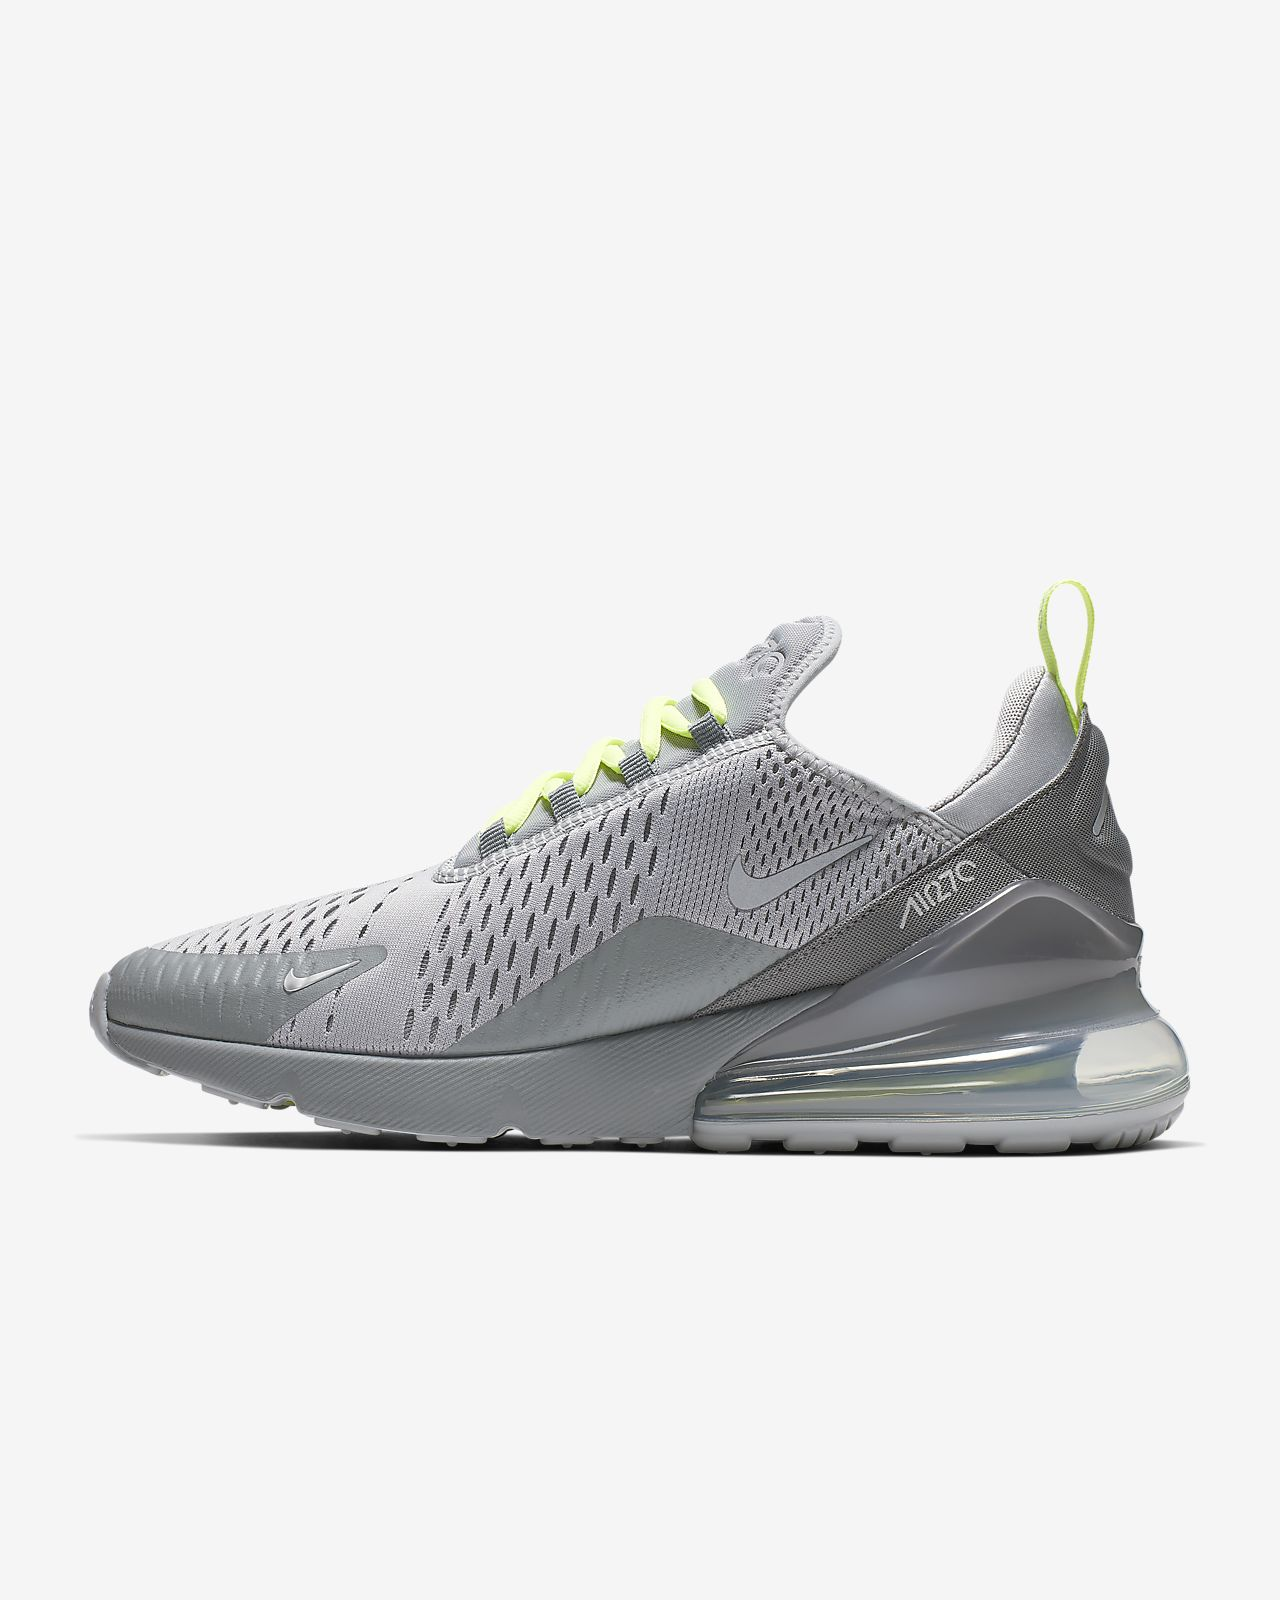 7bd08b8a66d5a Nike Air Max 270 Men's Shoe. Nike.com GB